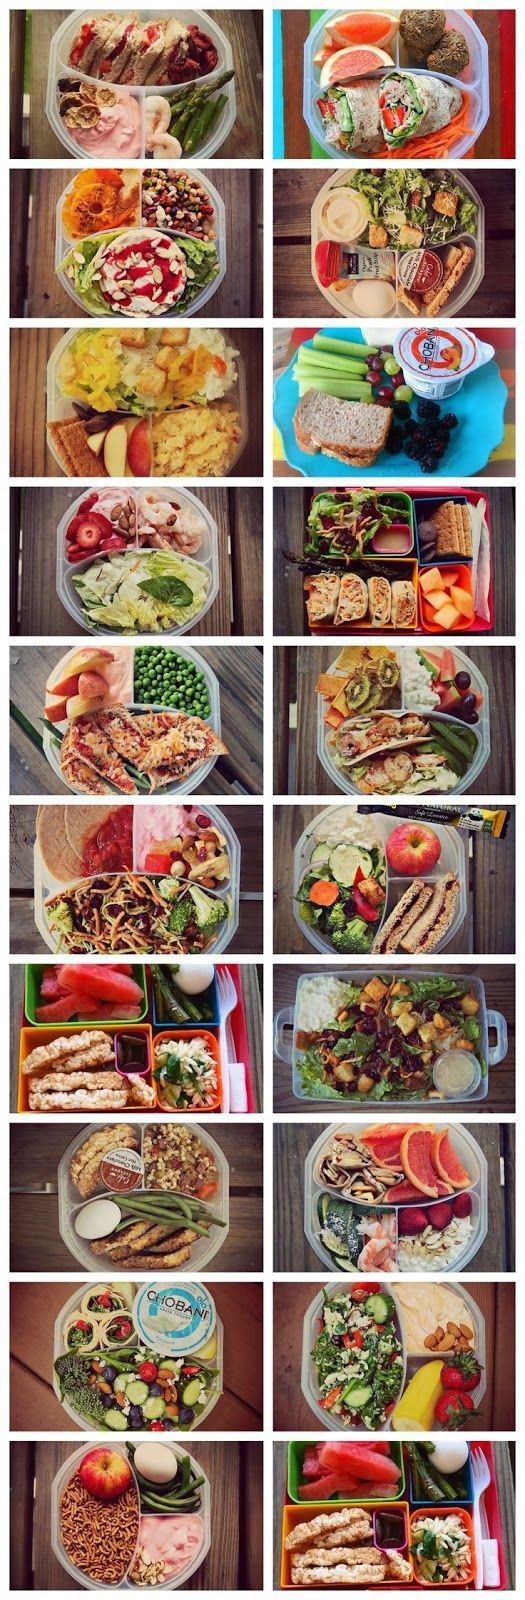 Want to eat tasty food while losing weight? It takes some proper meal planning, and I can help.